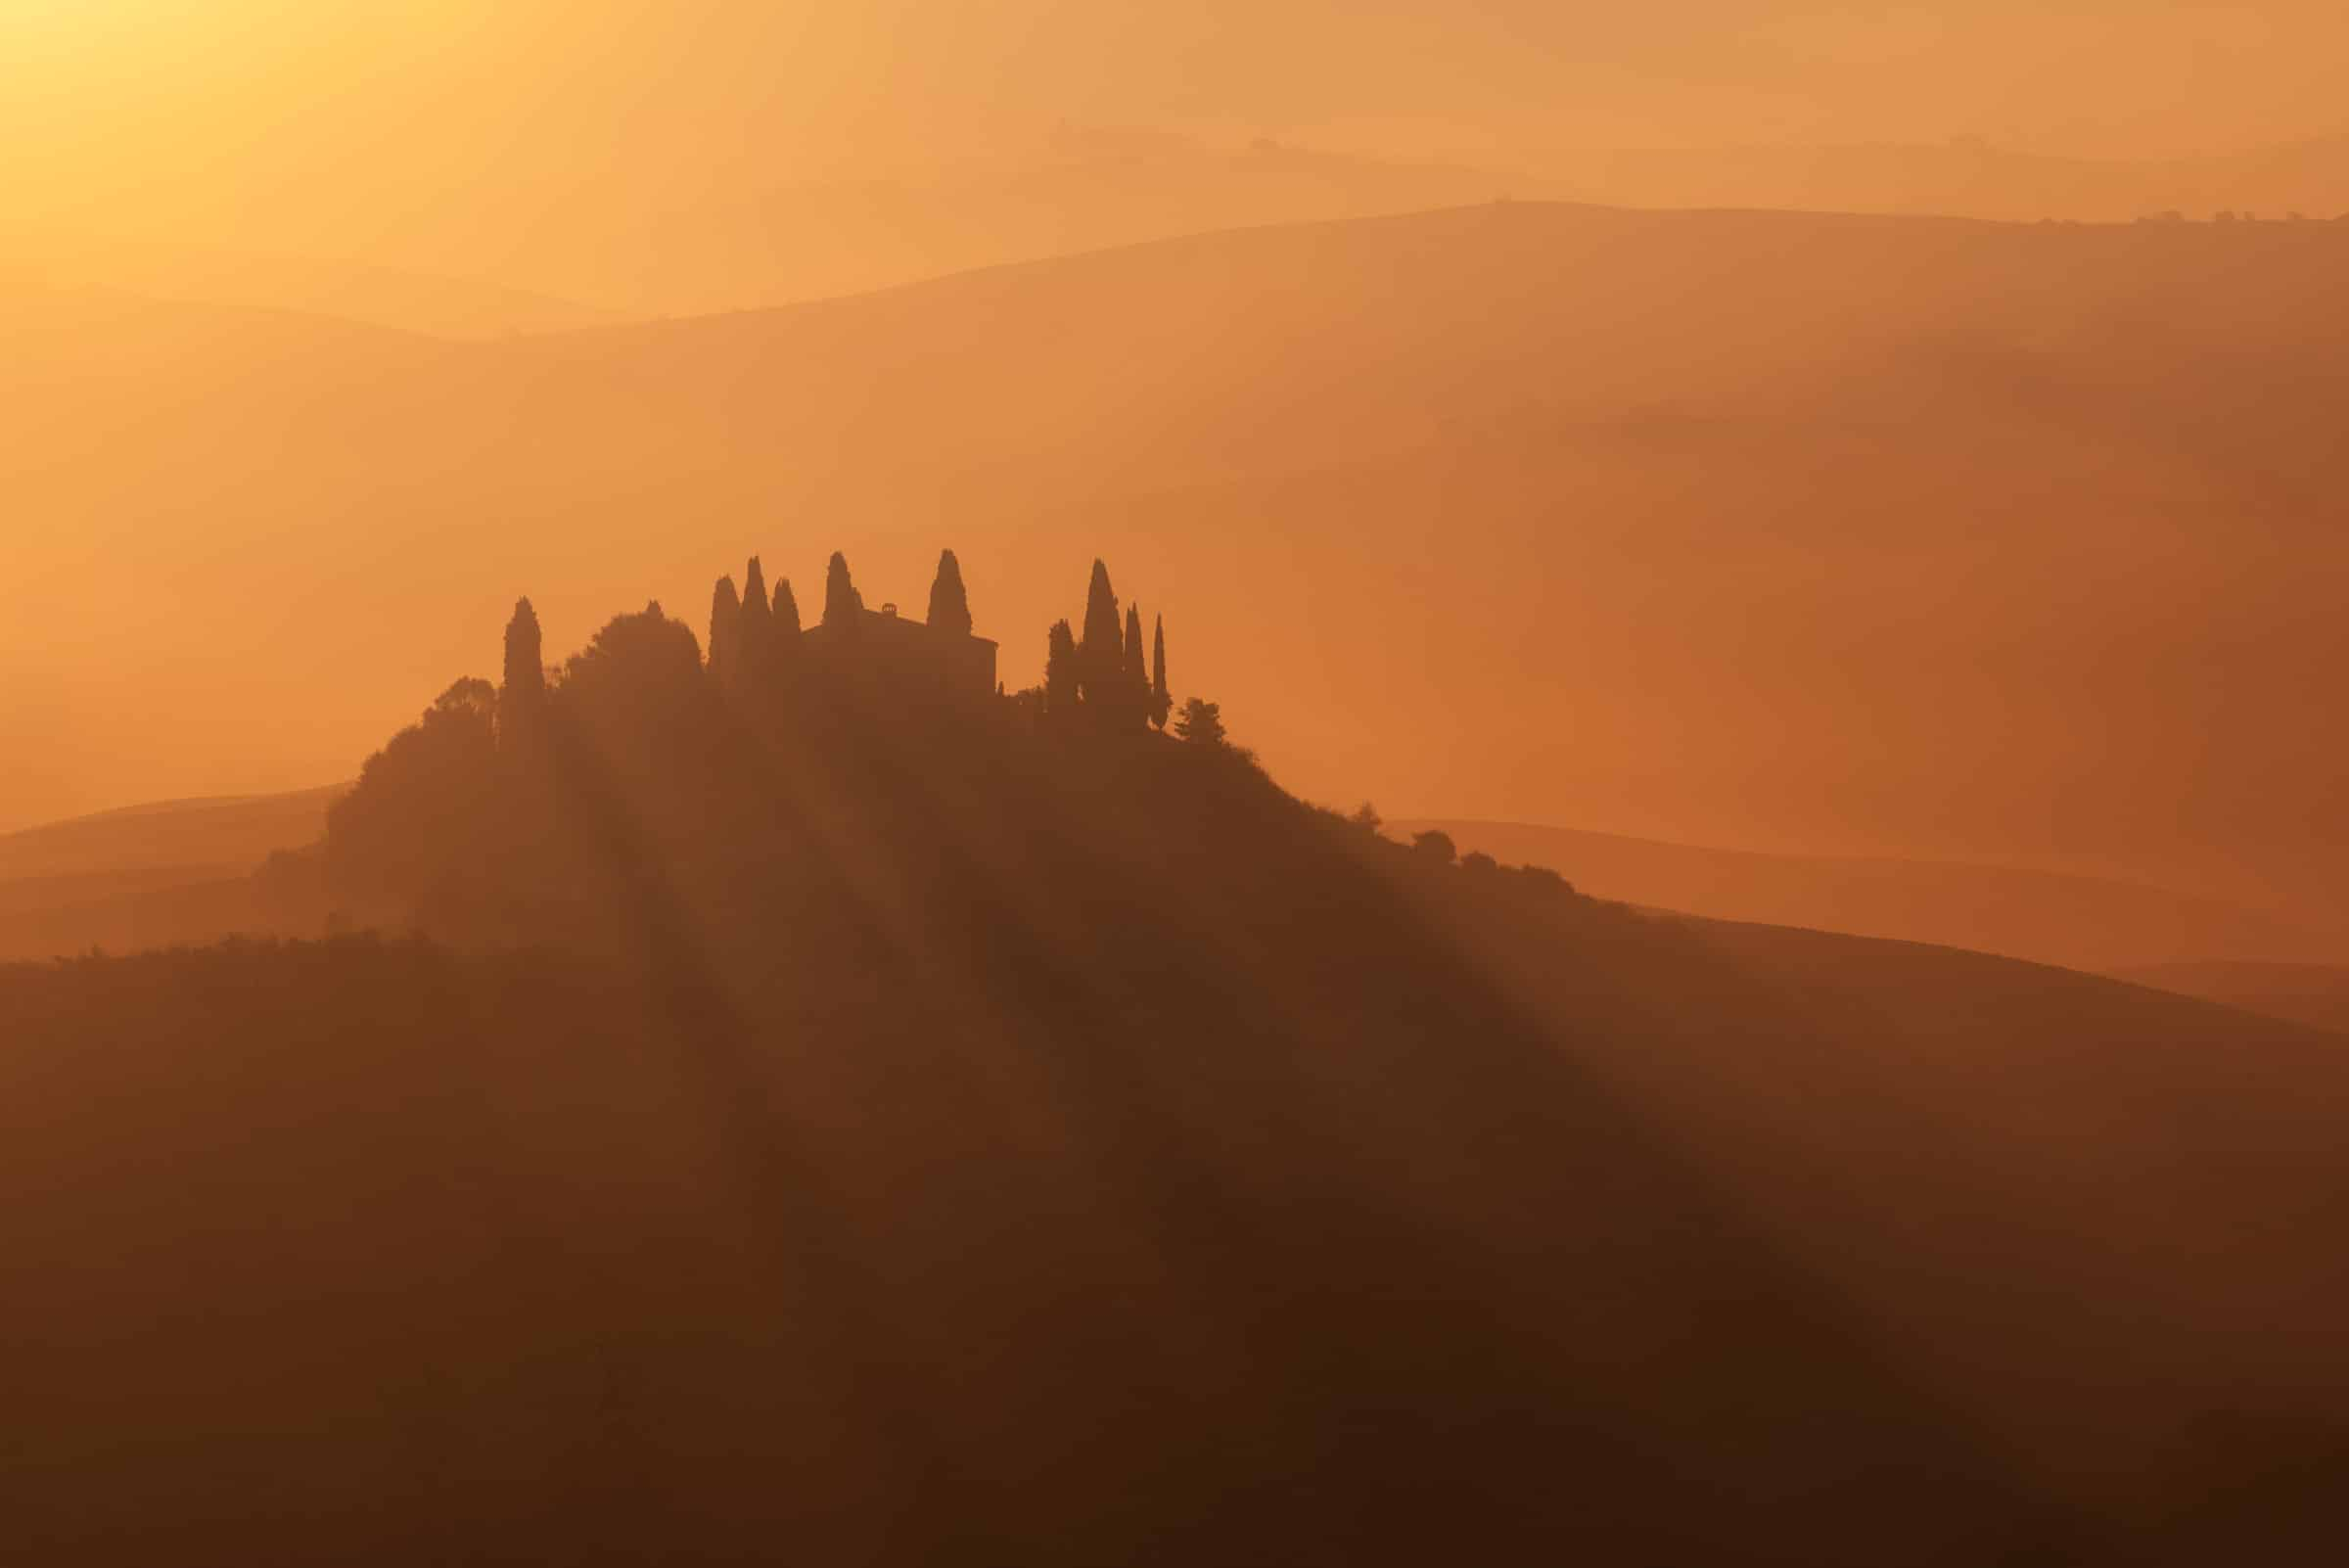 podere belvedere photo tour in tuscany